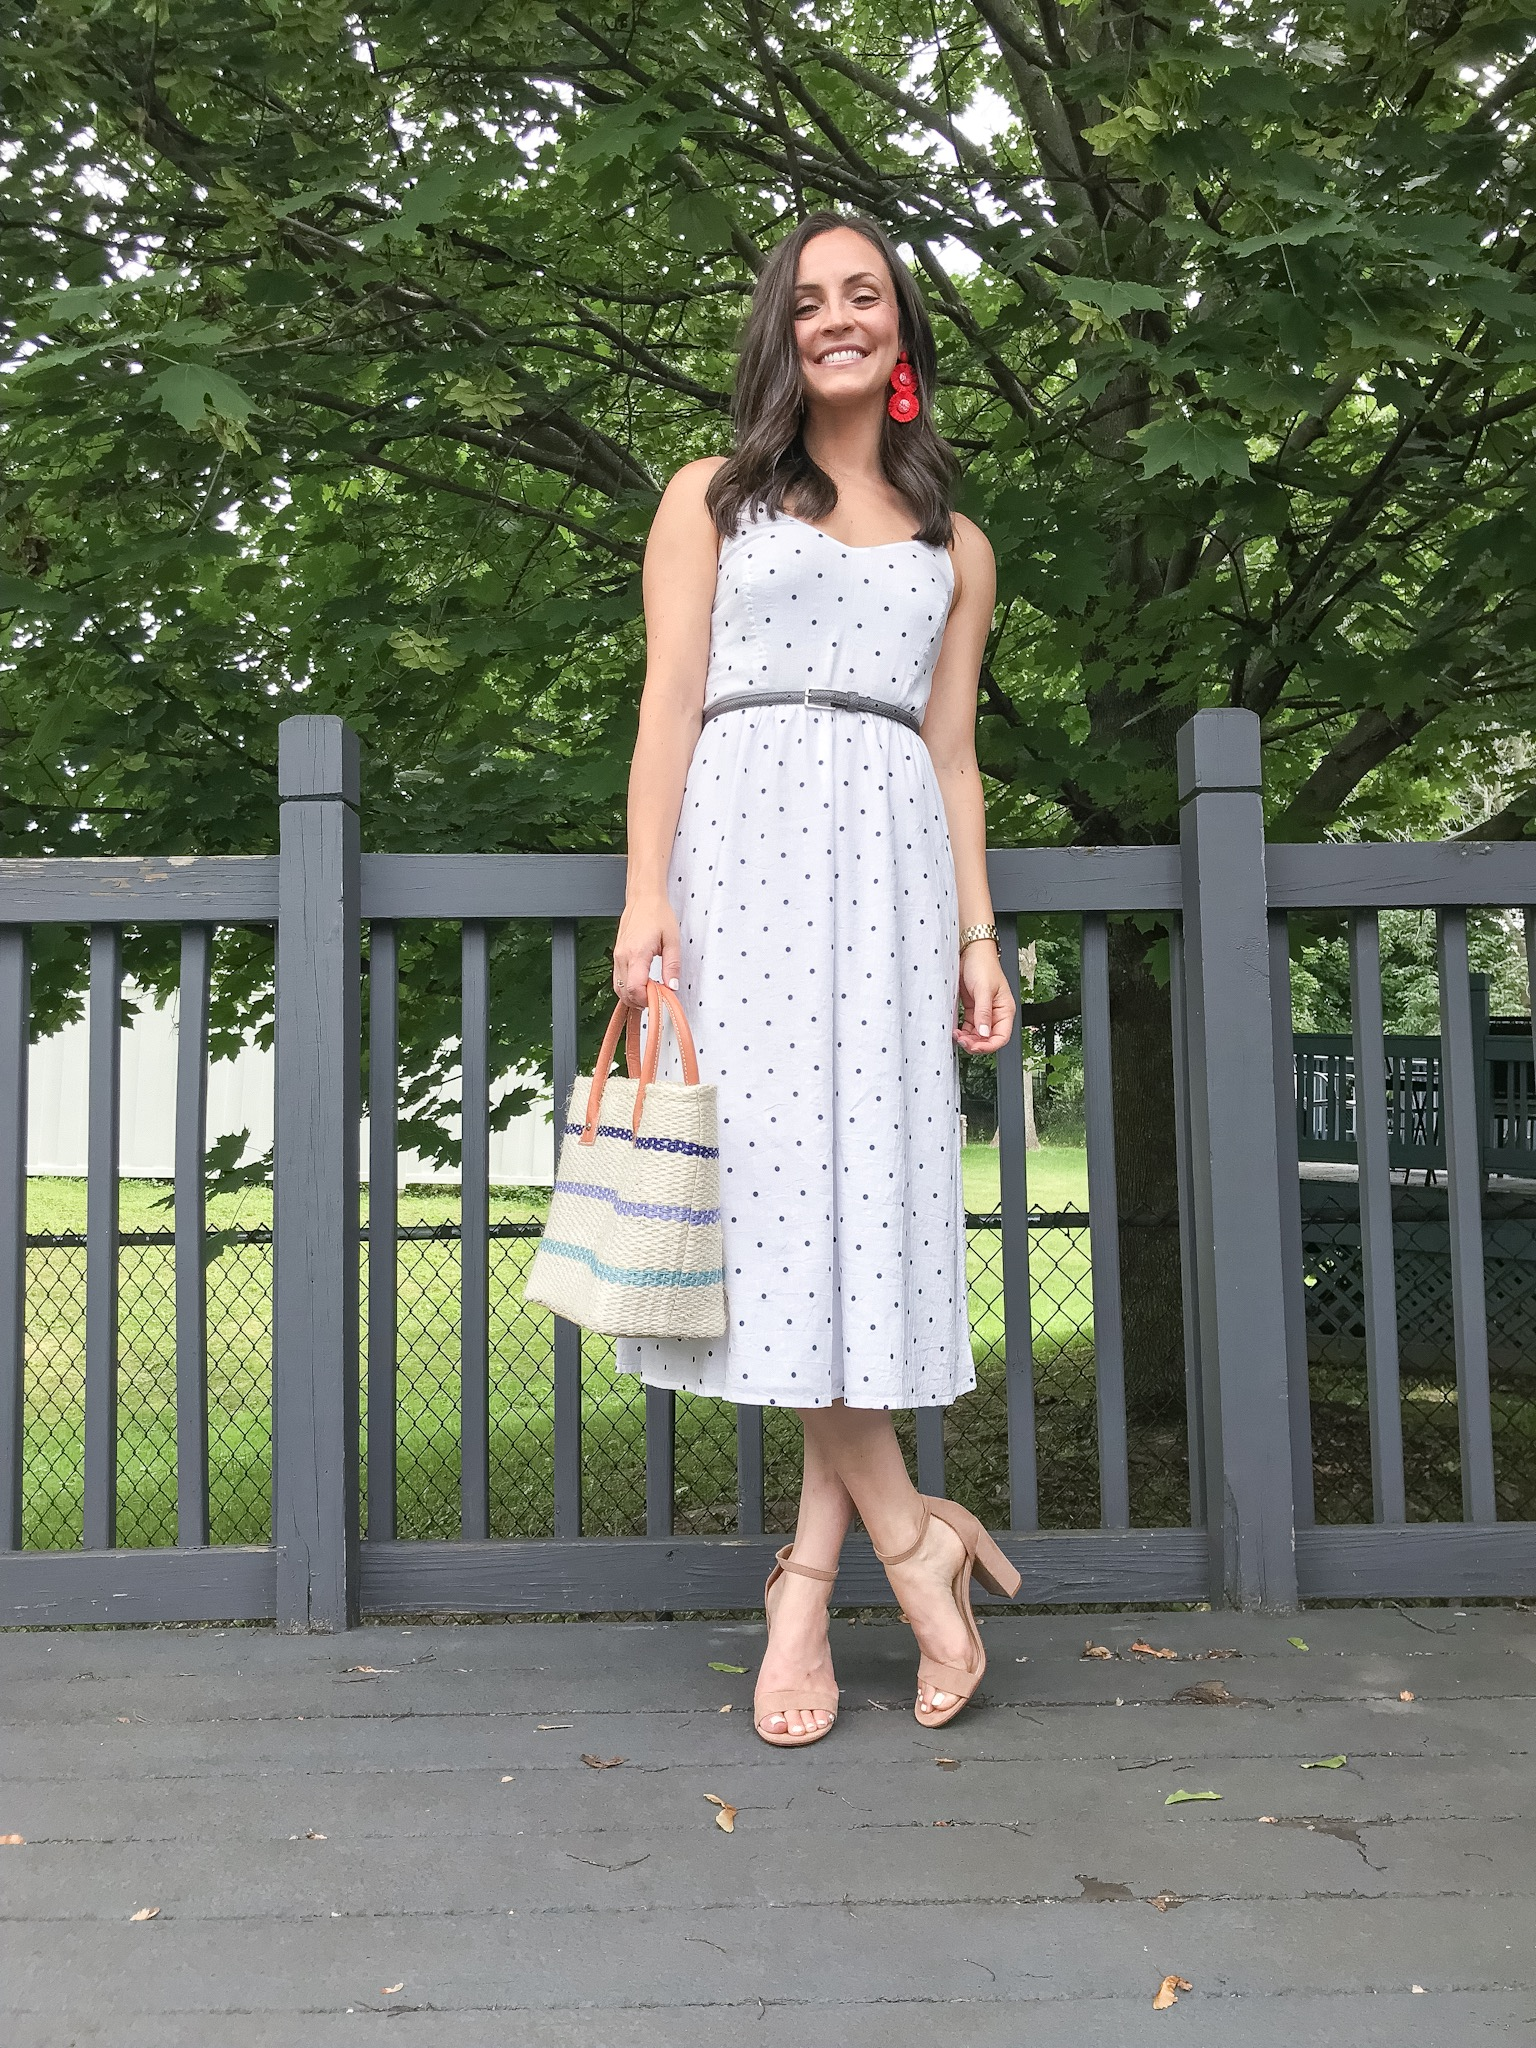 4th of July Outfit Ideas - The Life She Wanders